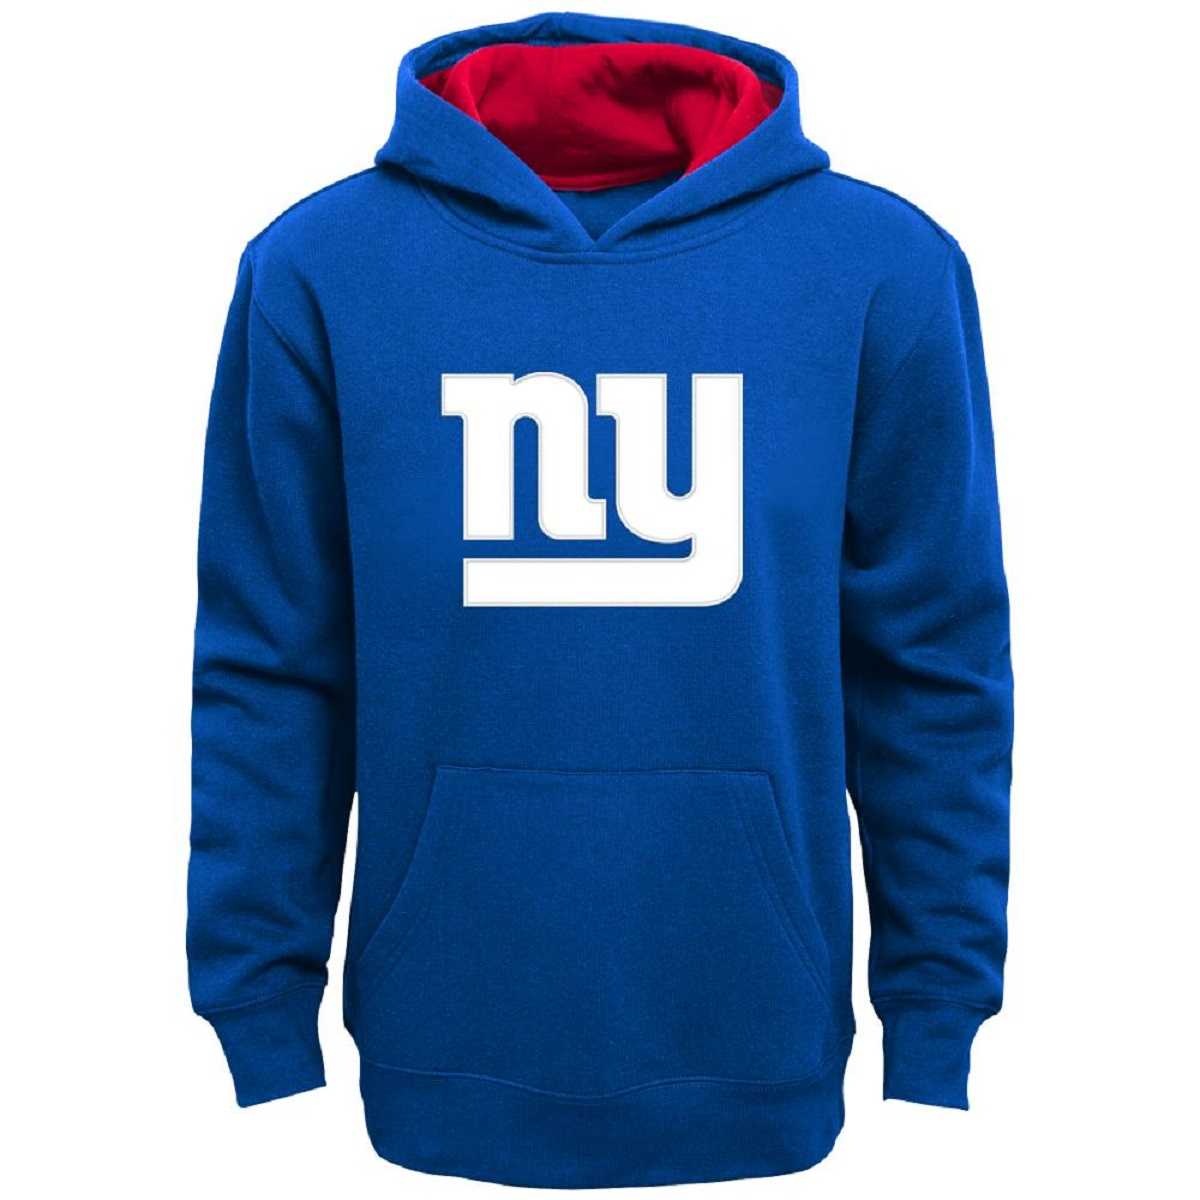 New York Giants Blue Youth Primary Hooded Sweatshirt Hoody (Youth S)